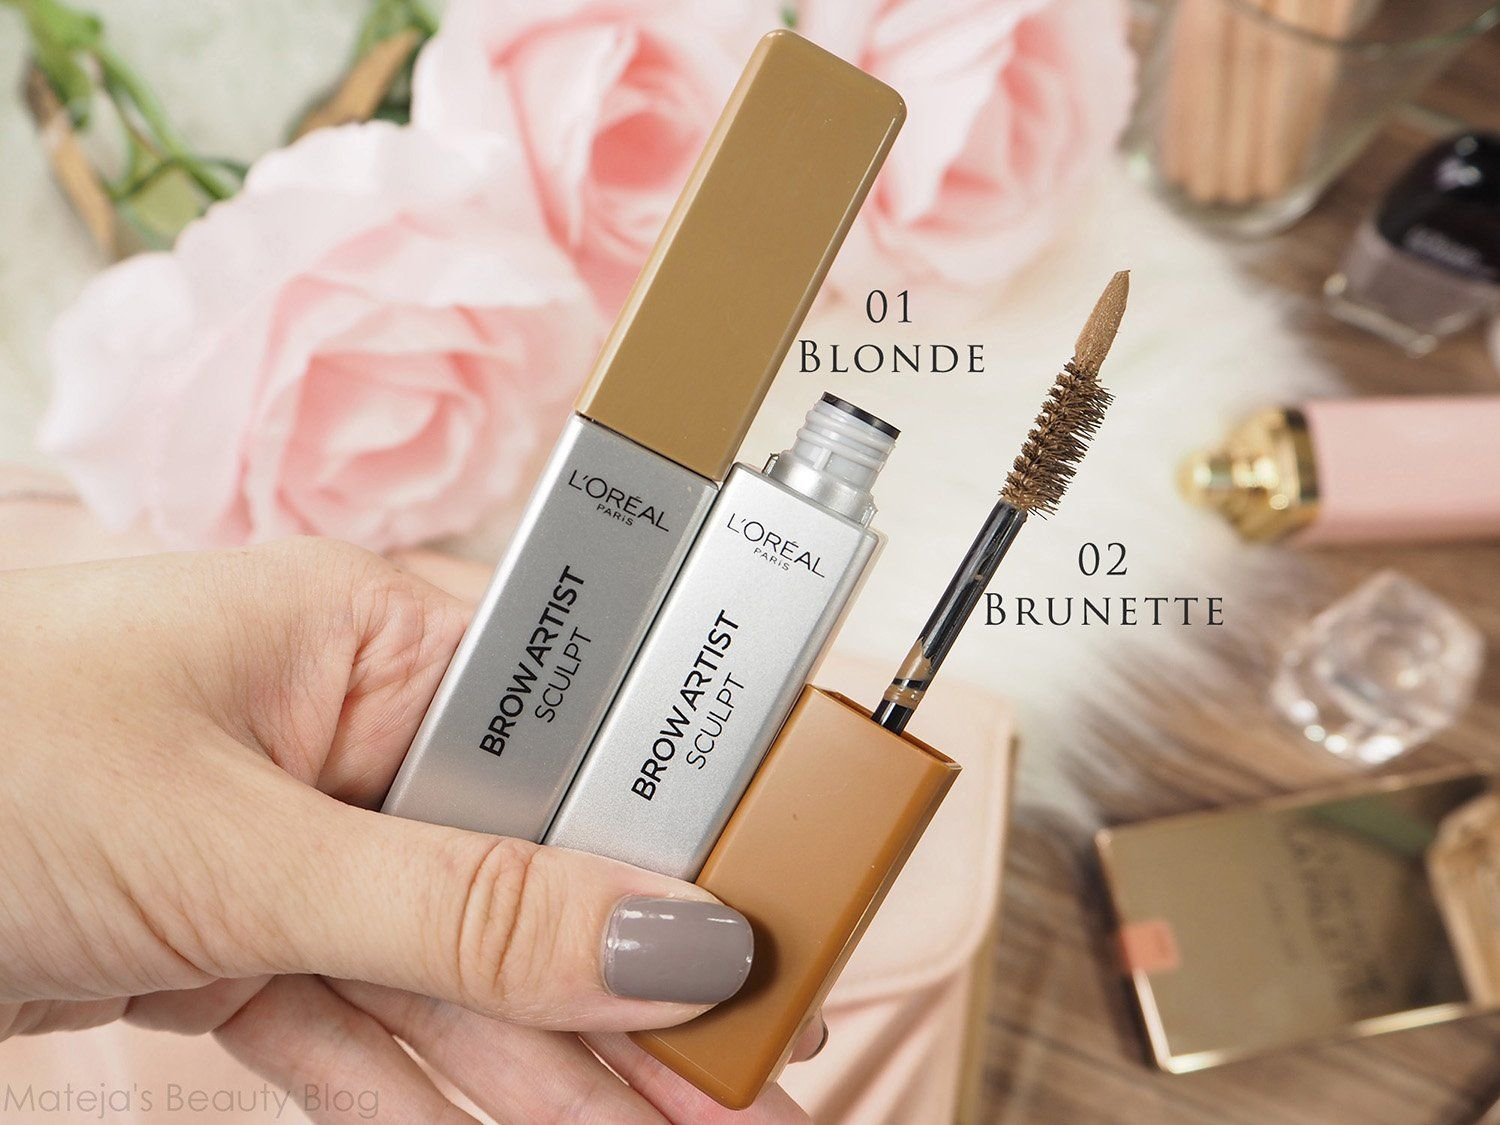 42dfc23f4b6 Brow artist sculpt-L'oreal - 4 options | lovely make-up | Brow ...